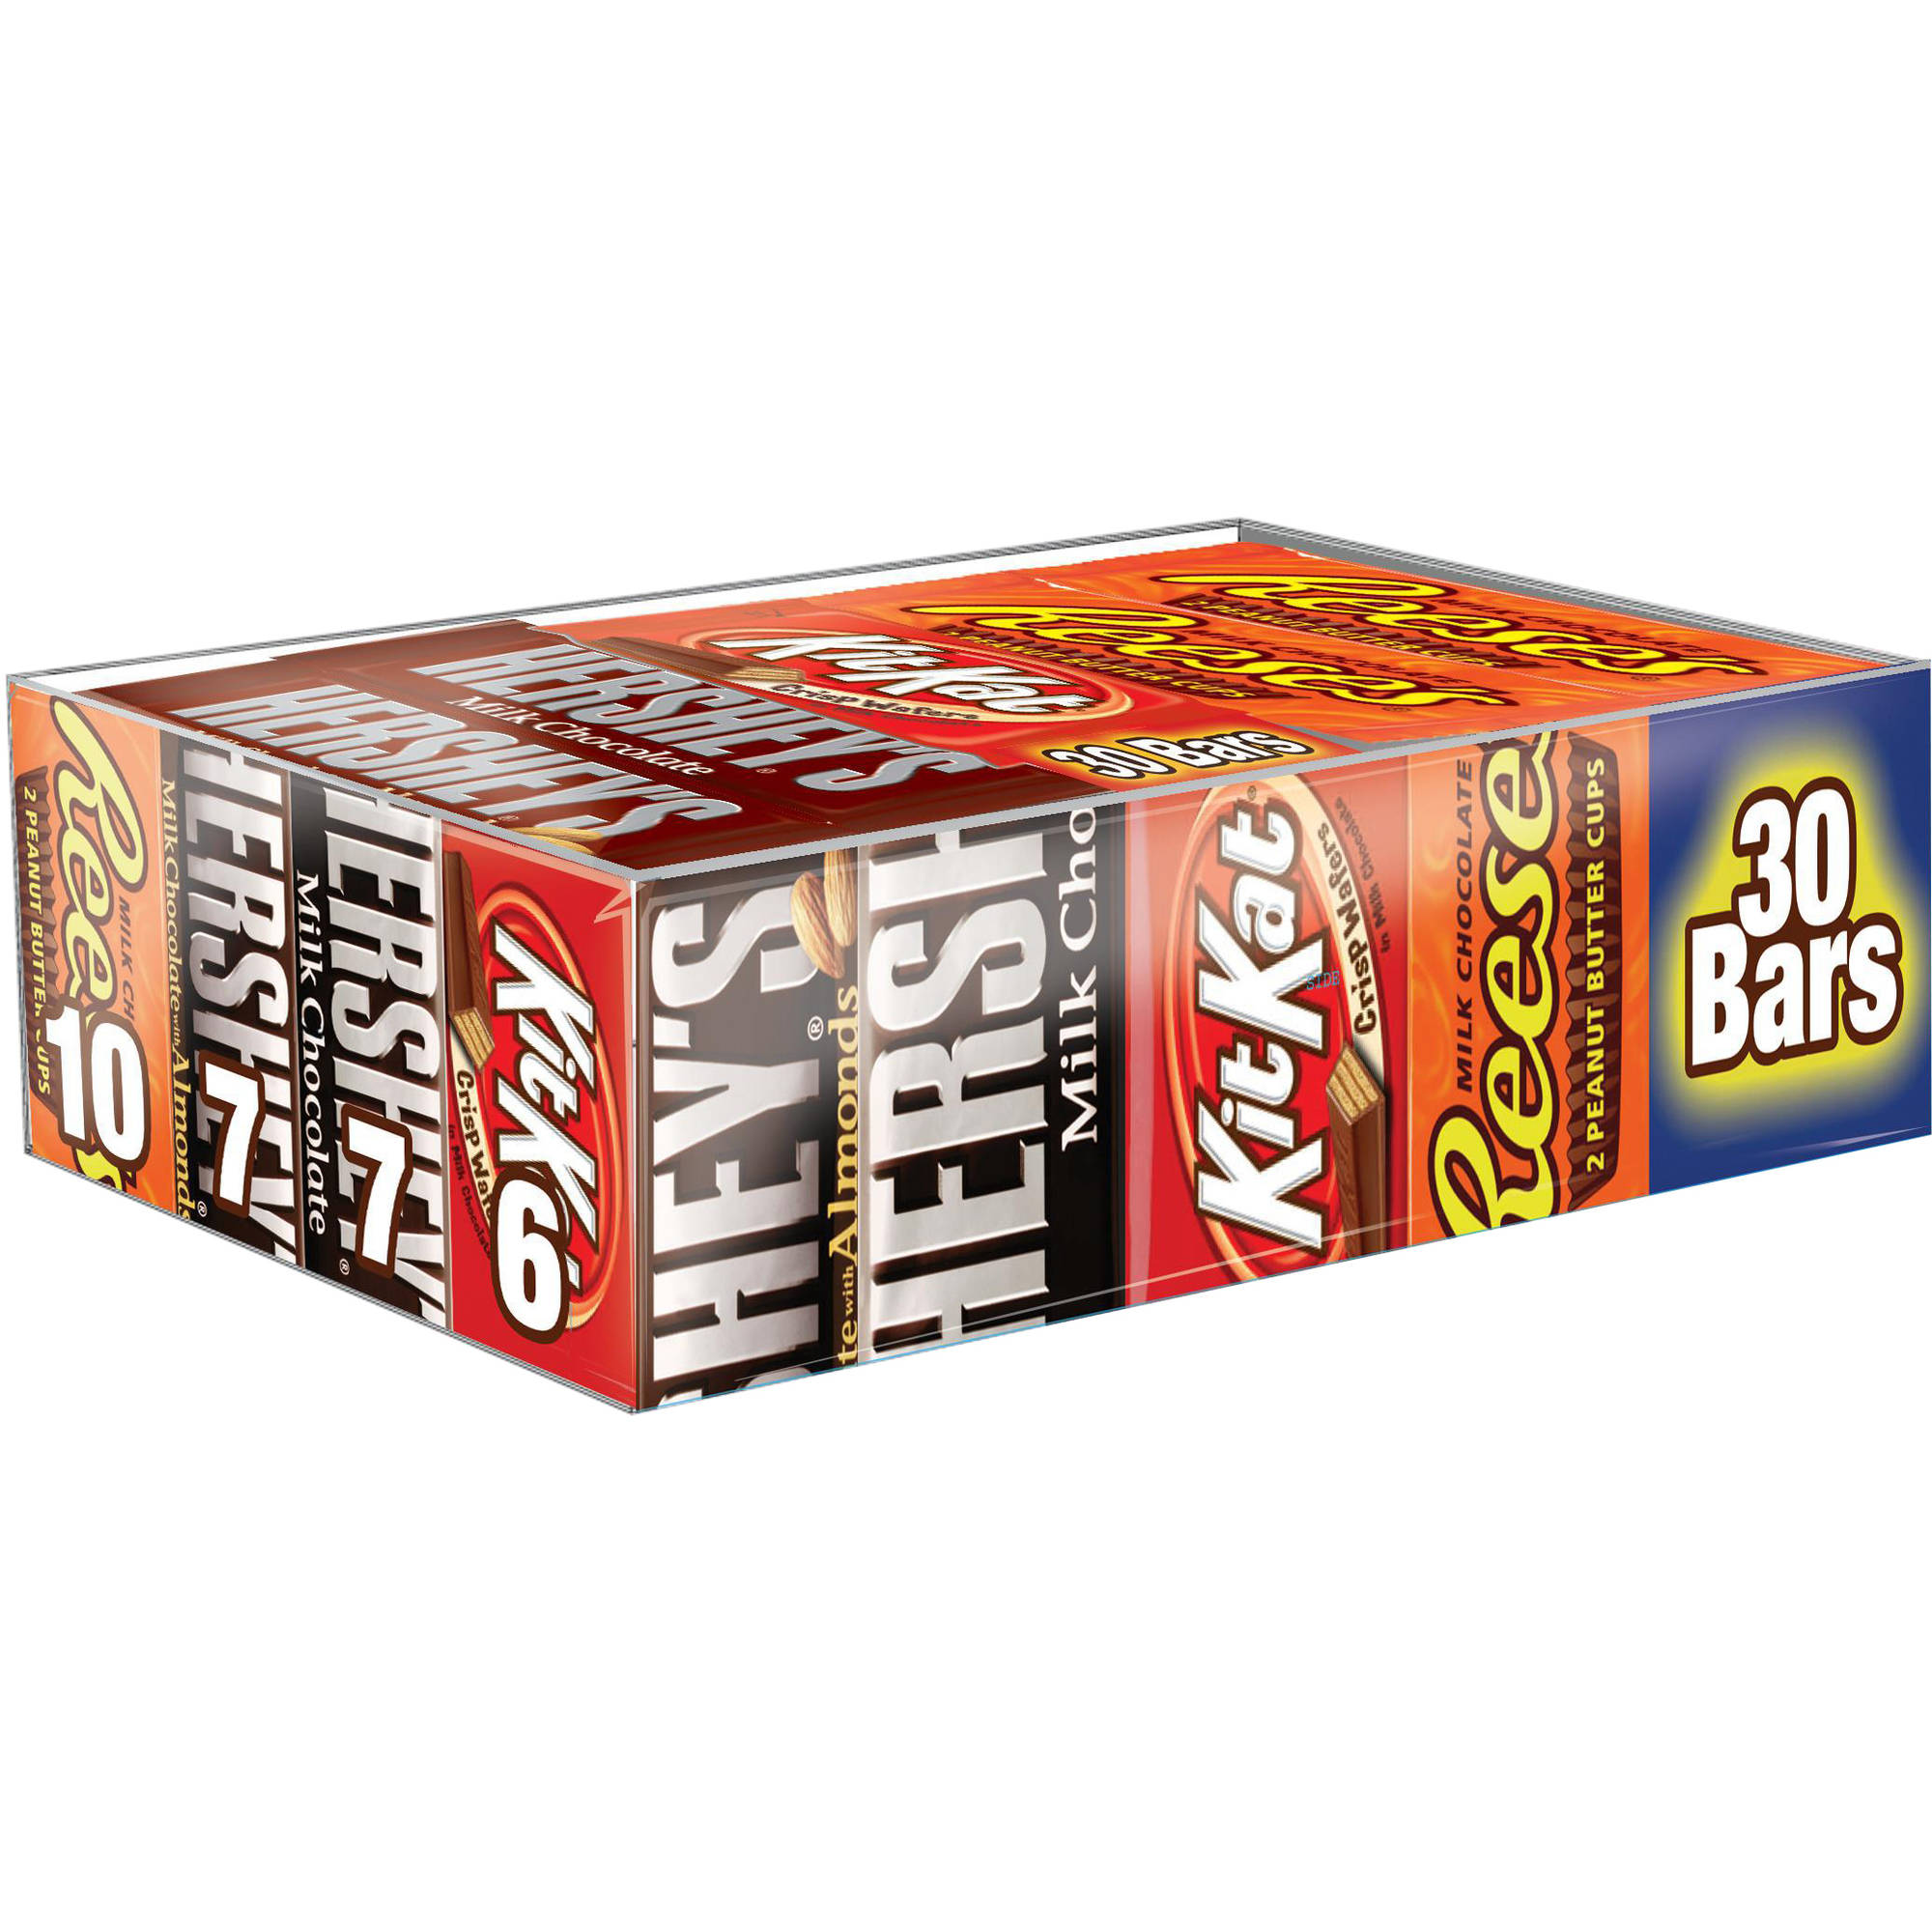 Hershey's Full Size Variety Pack Chocolate Candy Bars, 30 Ct